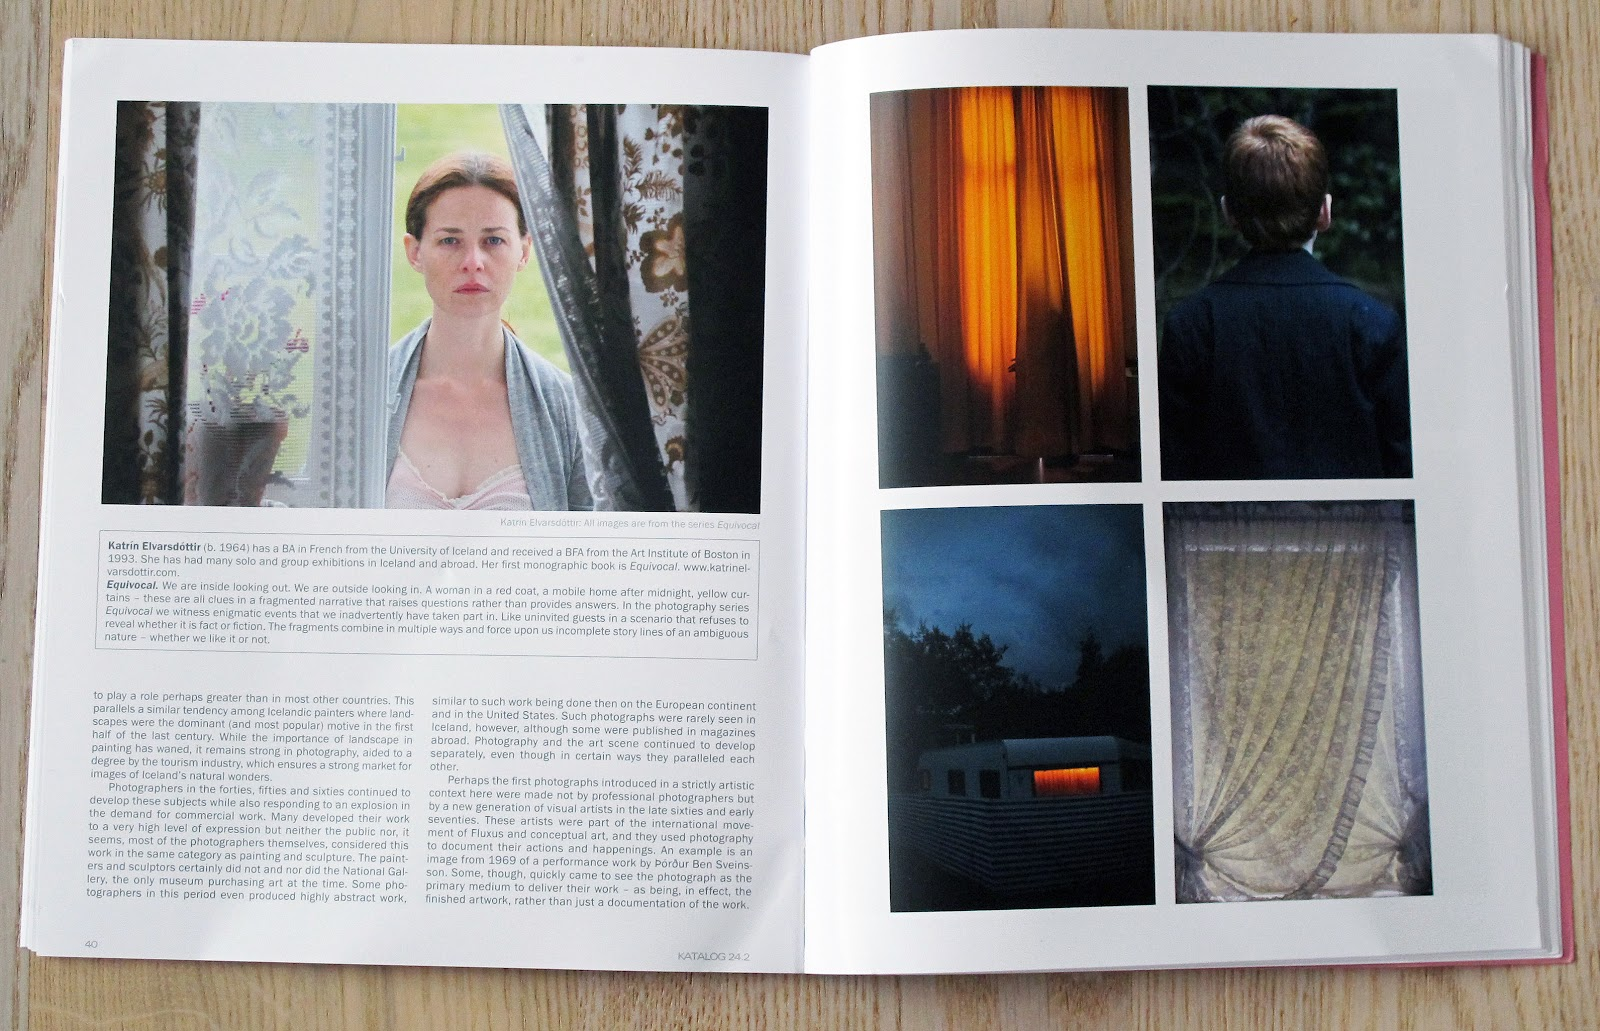 journal of photography and video published by museet for fotokunst odense editor in chief is jens friis curator of exhibitions at the museum as well